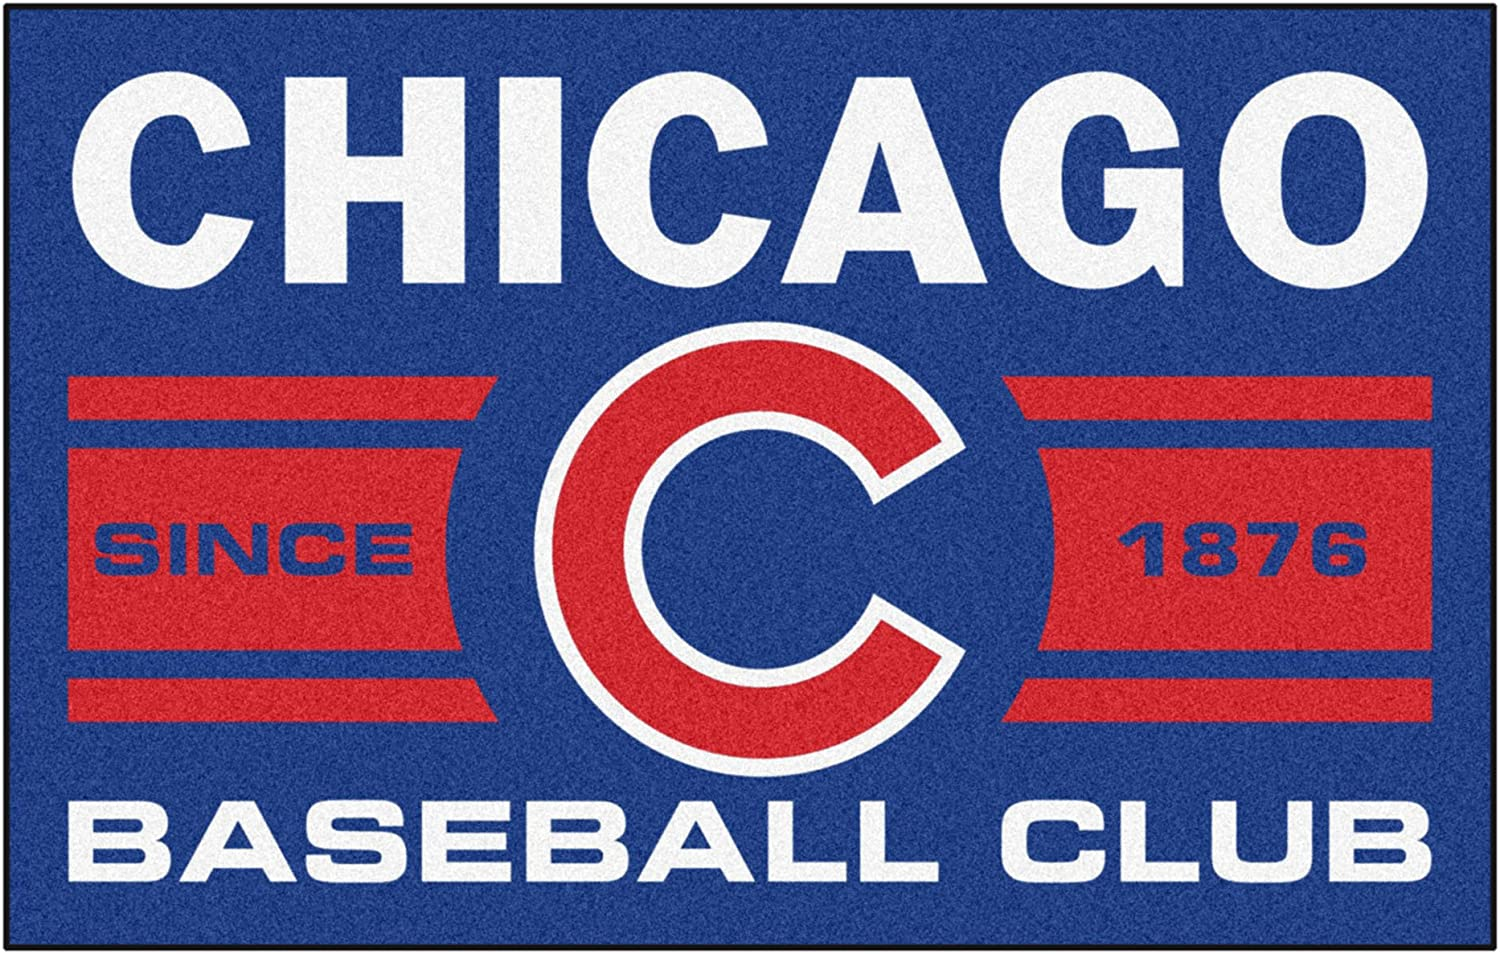 FANMATS 18463 Chicago Cubs National products Baseball Club Team gift Rug Color Starter